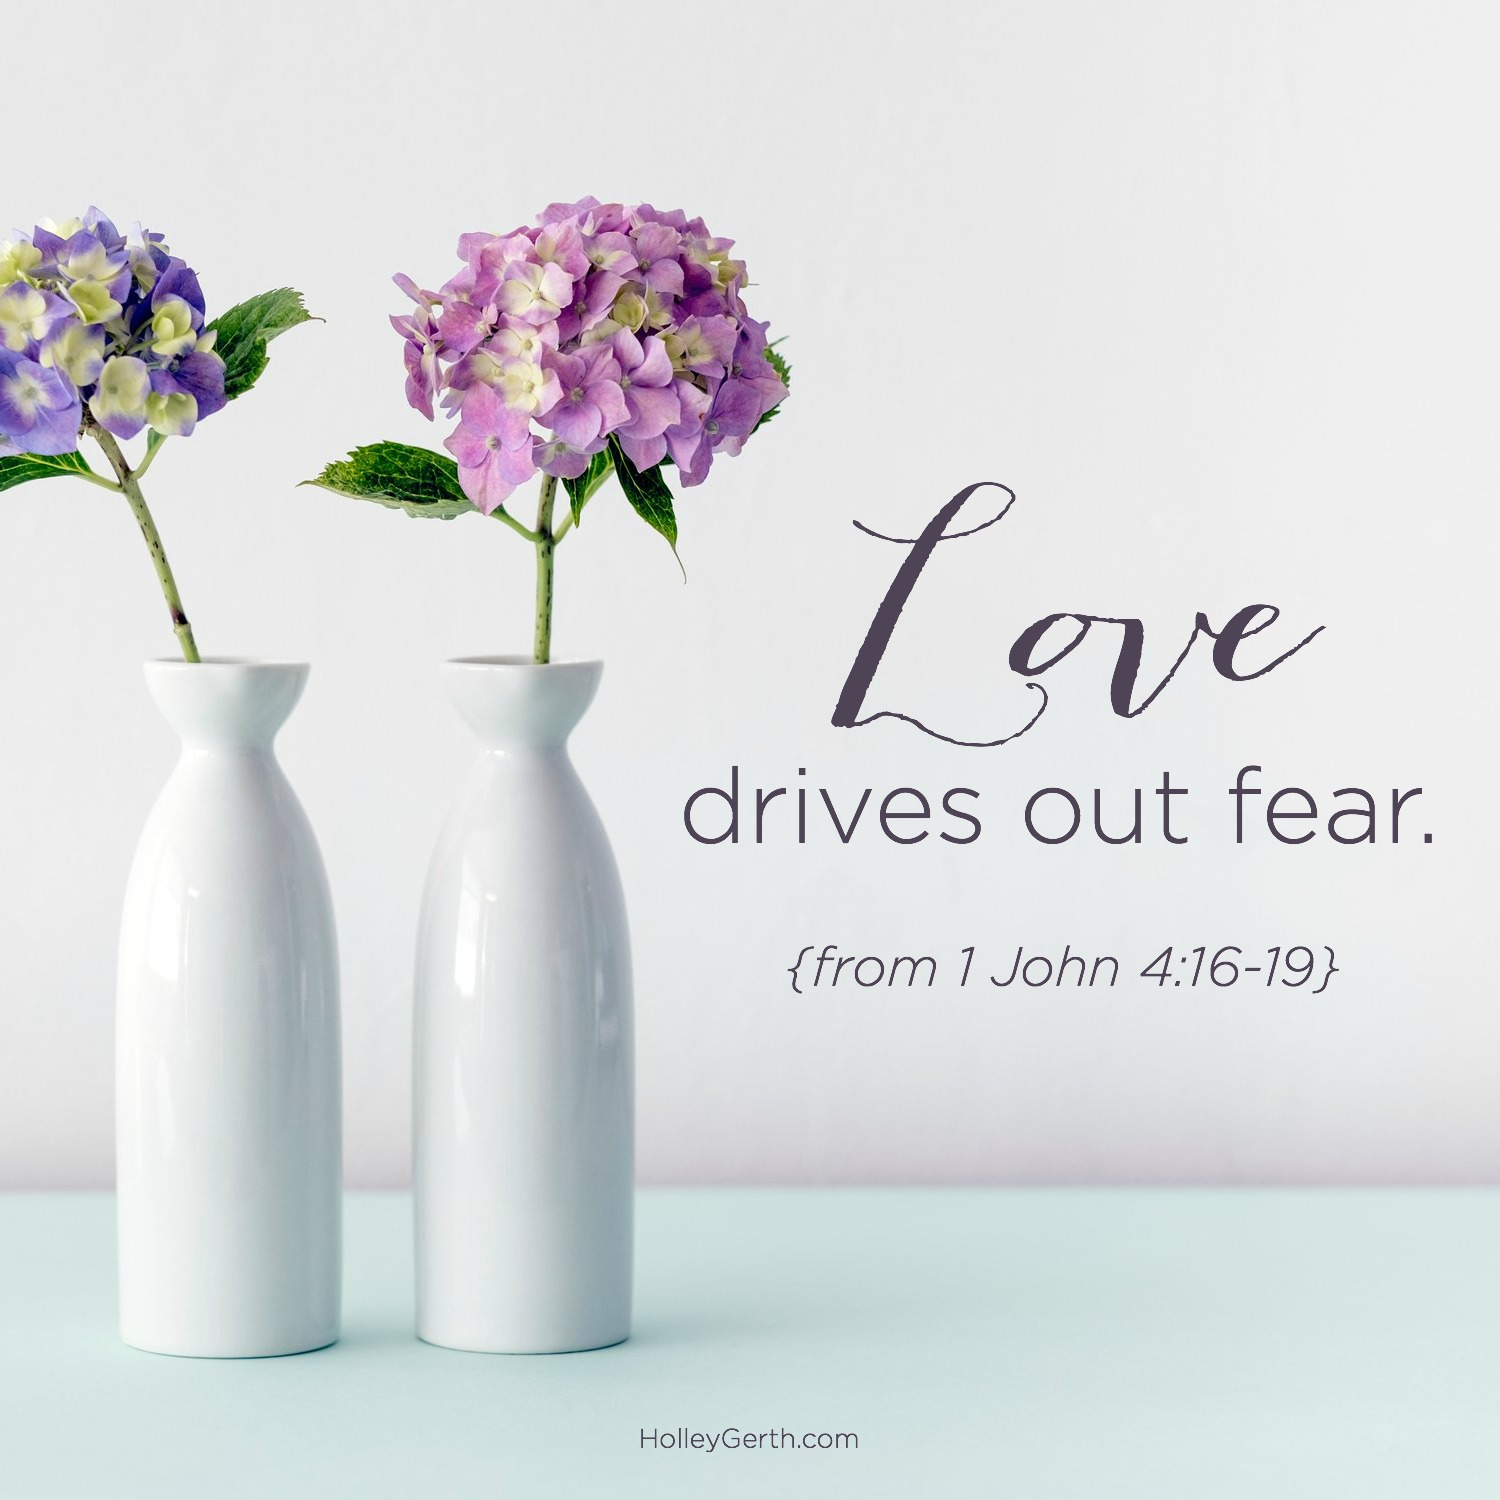 Love drives out fear. {from 1 John 4:16-19}